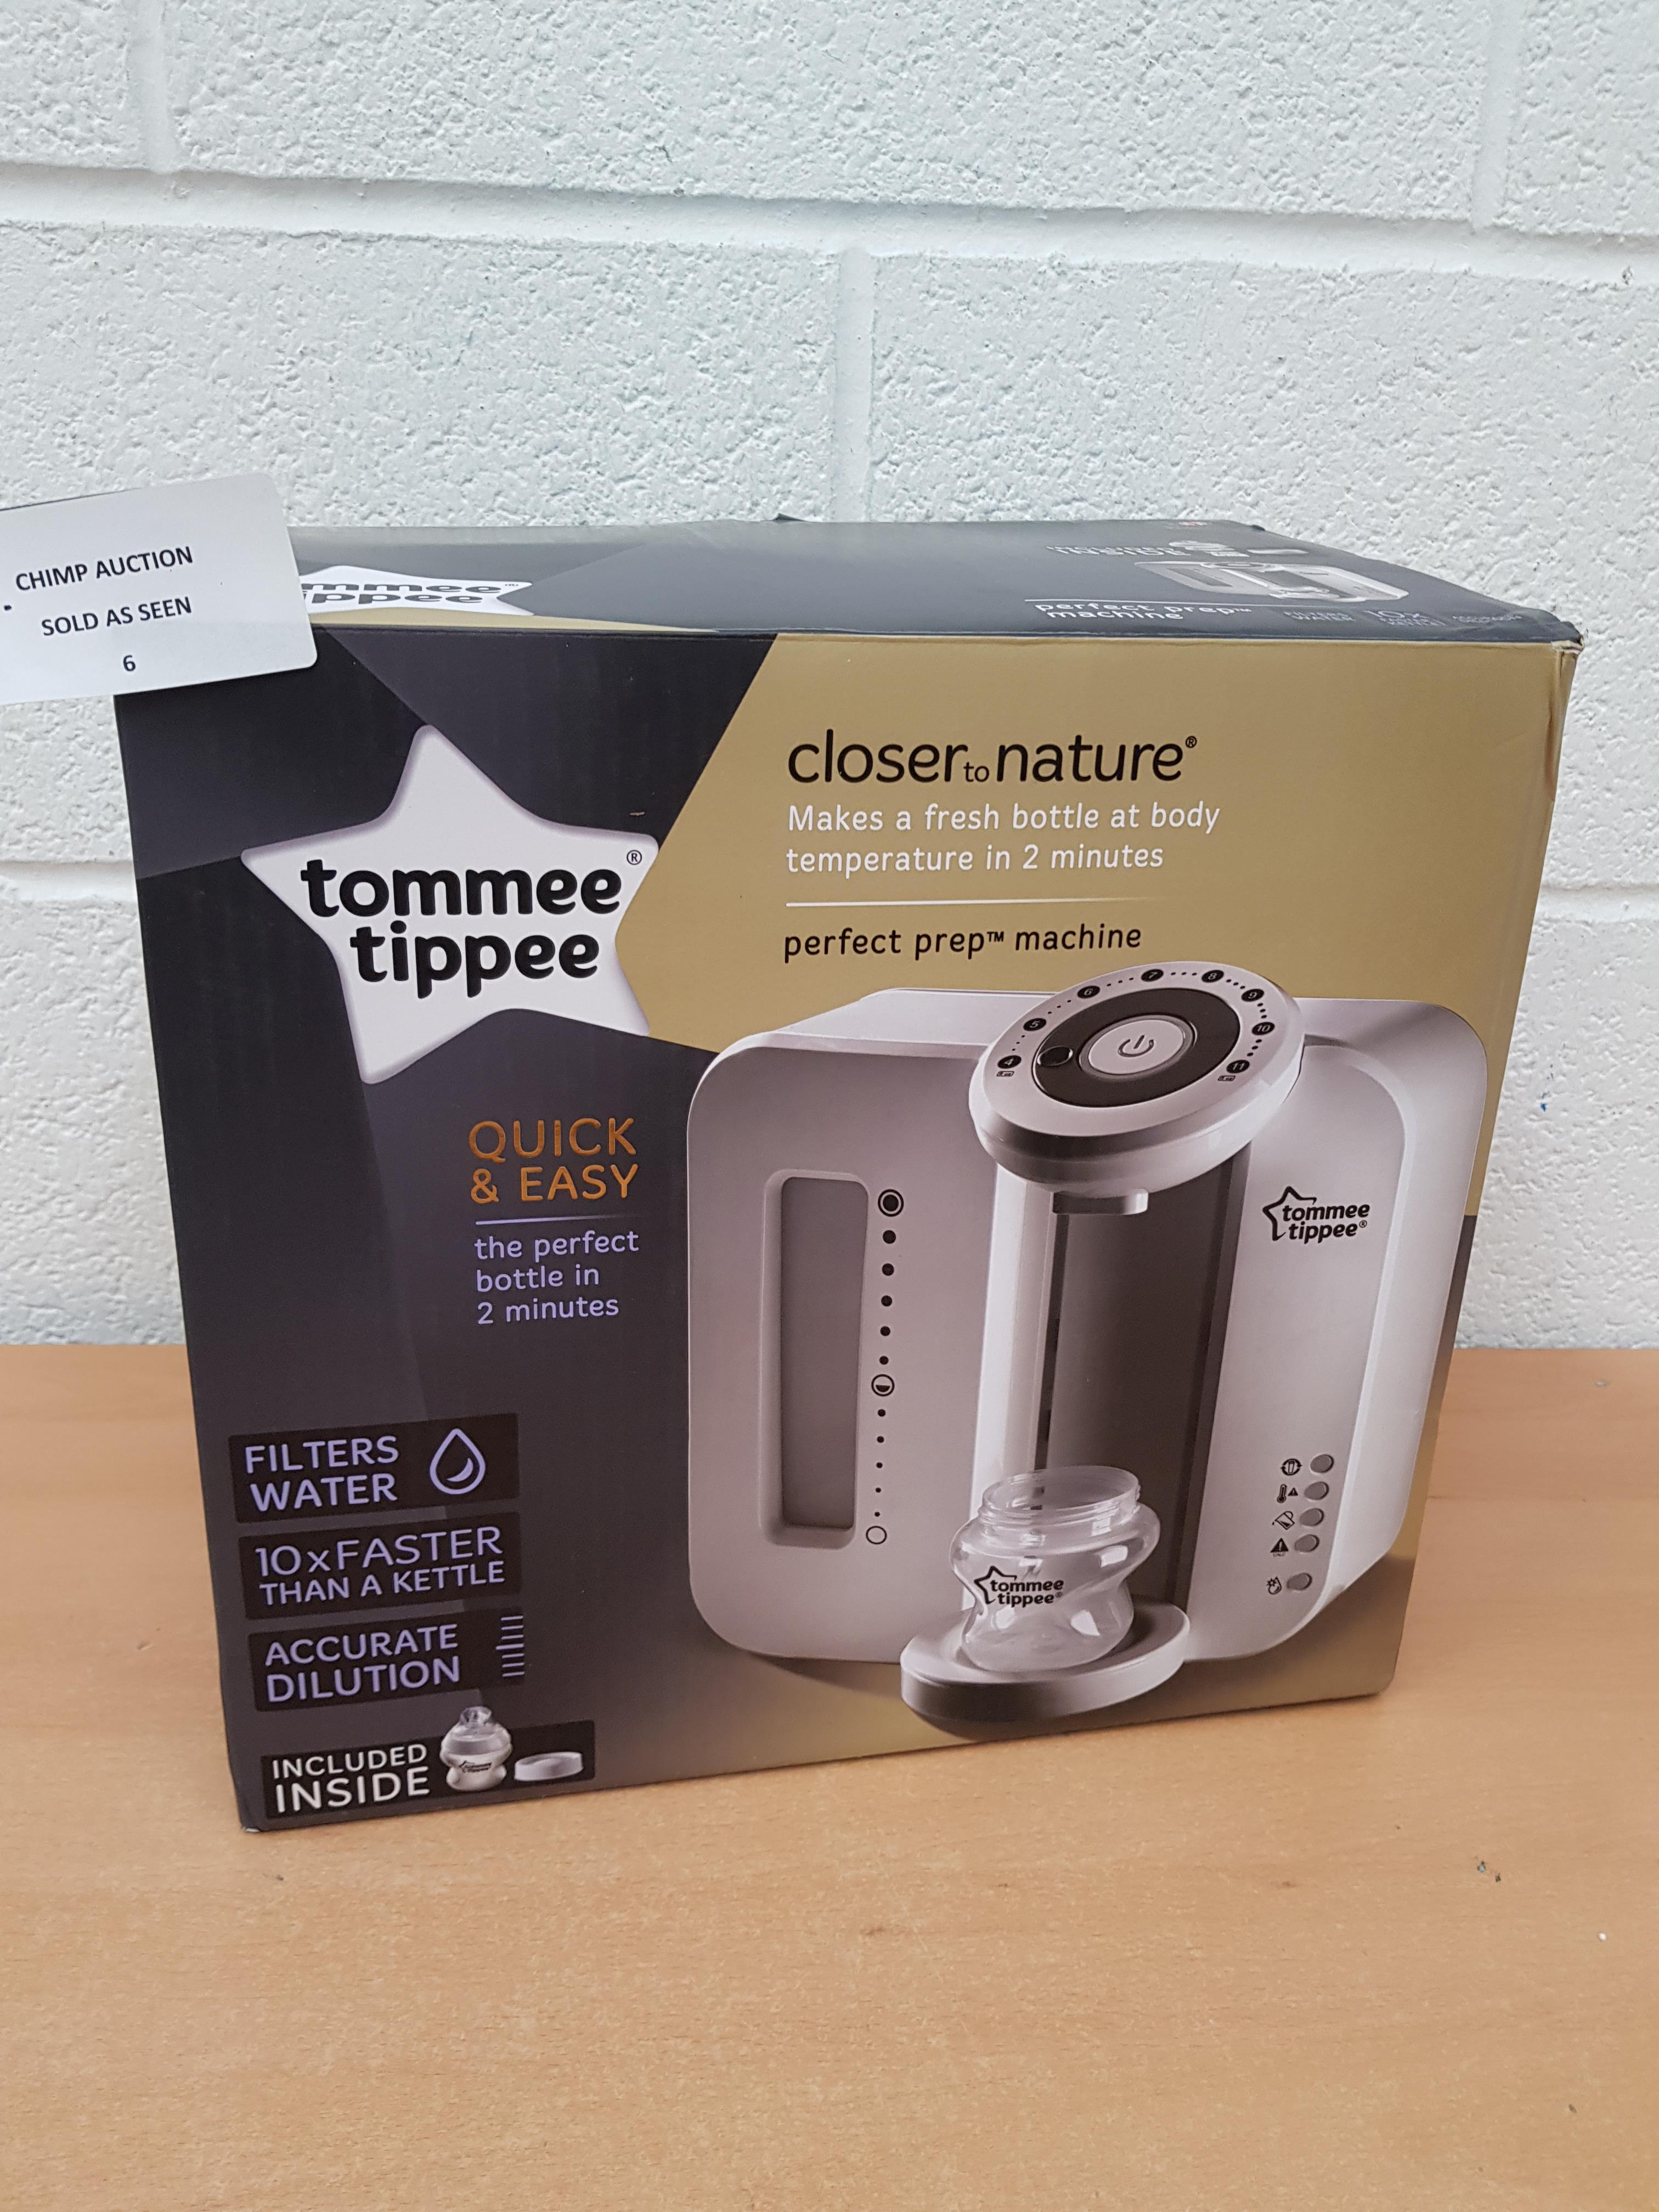 Lot 6 - Tommee Tippee Perfect Prep Machine RRP £129.99.